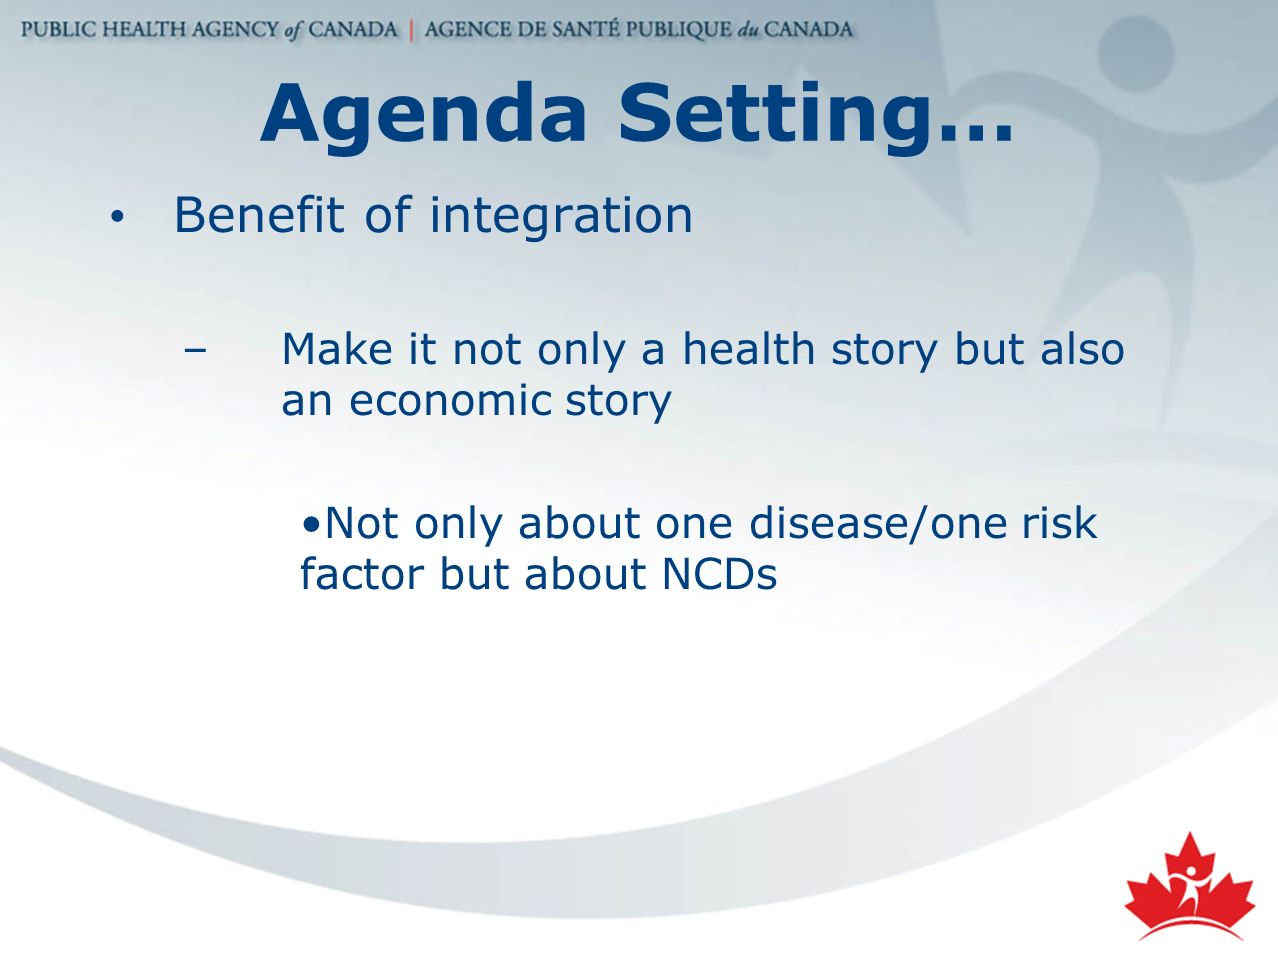 Agenda Setting… Benefit of integration –Make it not only a health story but also an economic story Not only about one disease/one risk factor but about NCDs